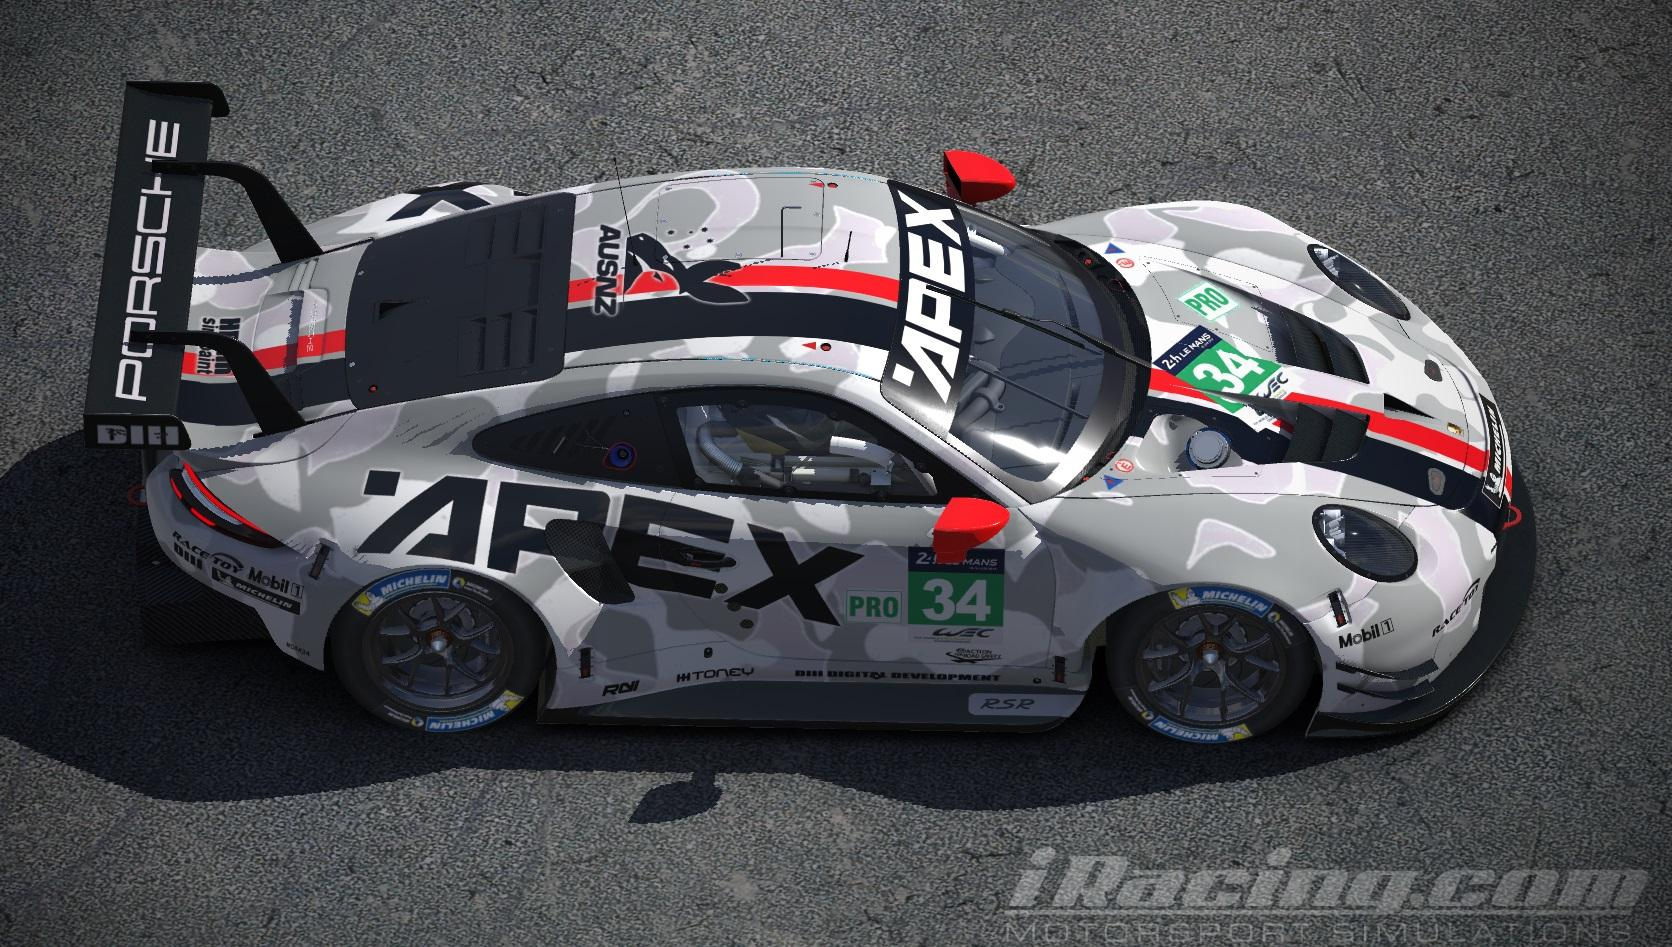 Preview of (Fictional) Porsche 991 RSR GTE Class Apex Design Livery by David M.